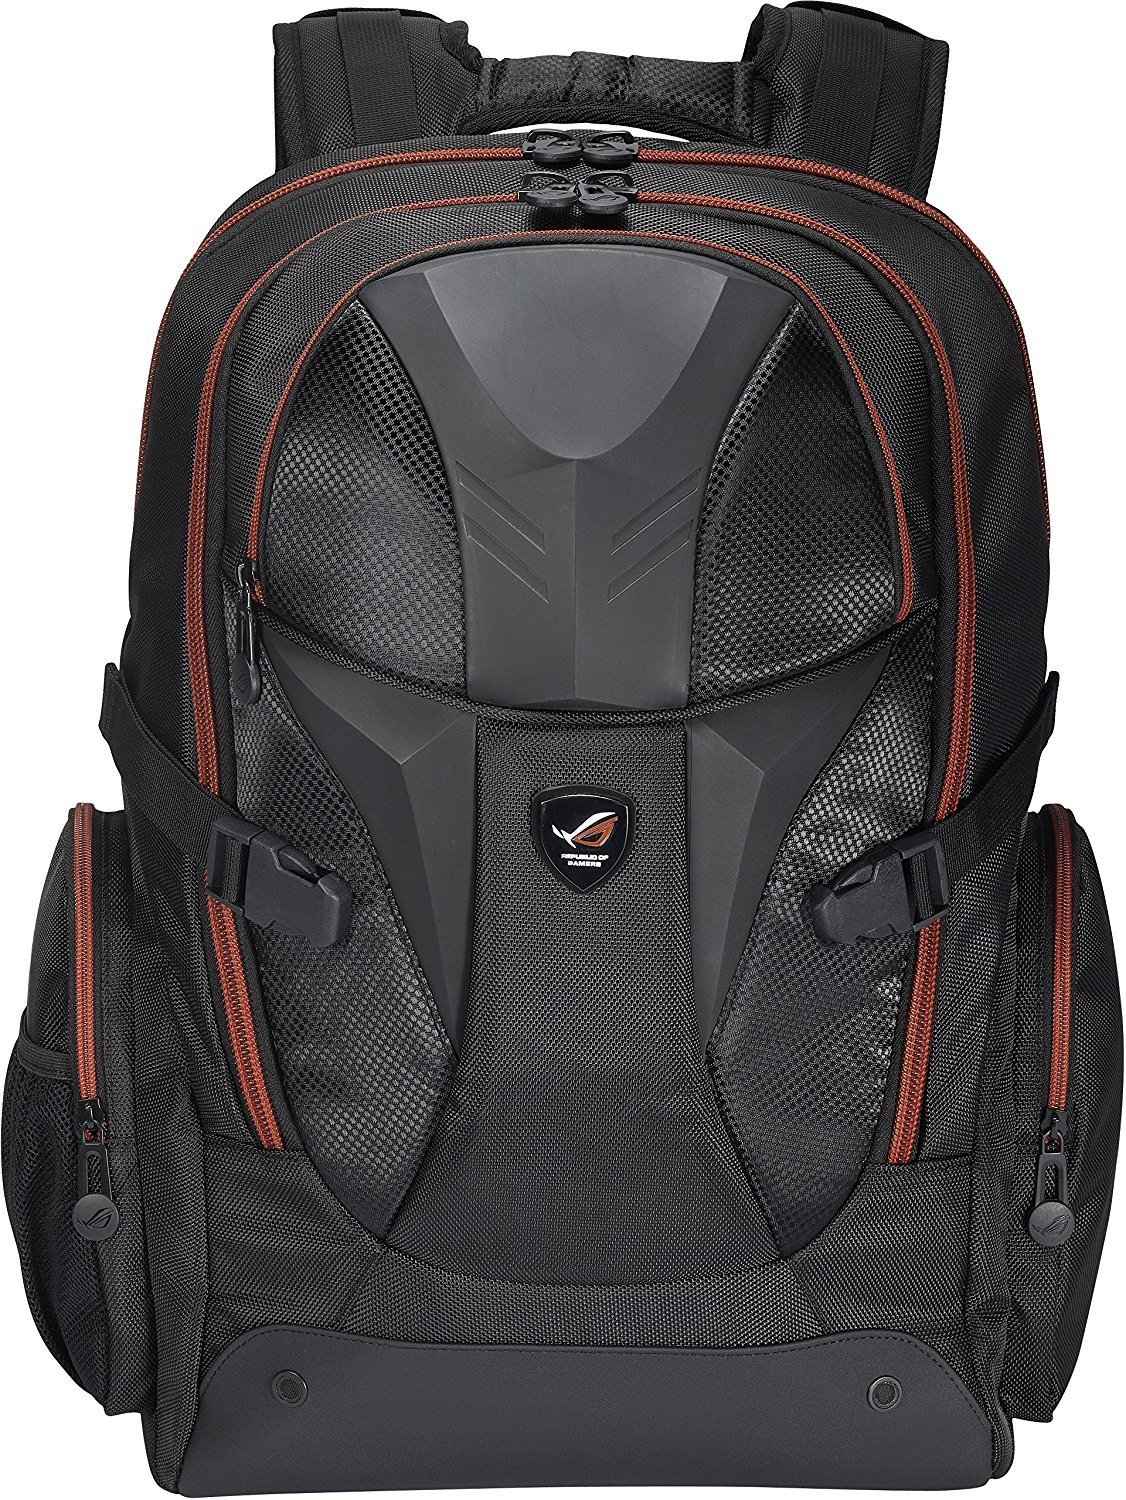 Image of Asus Nomad